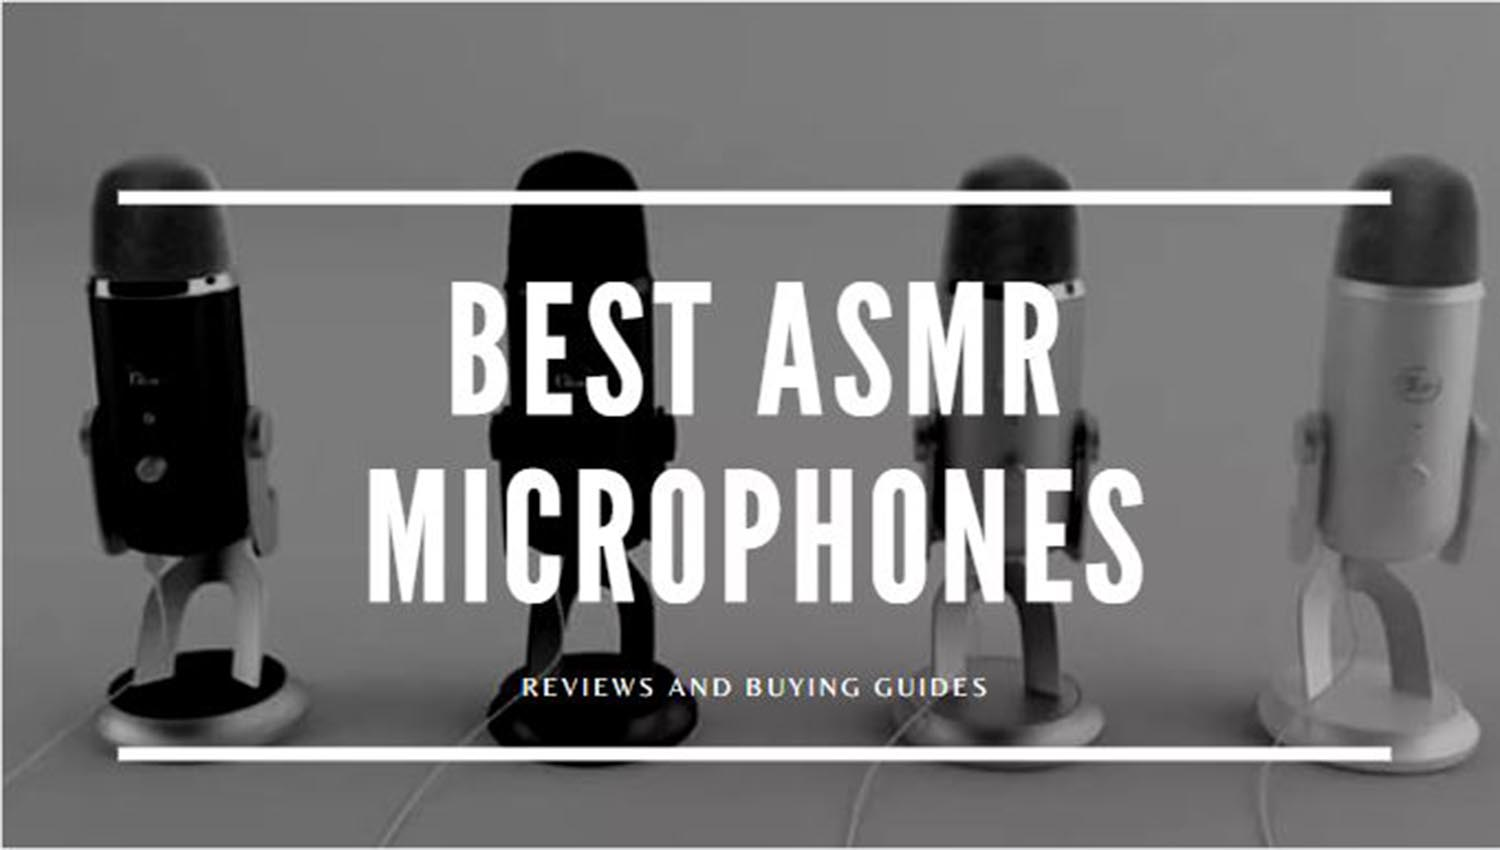 Best ASMR microphones